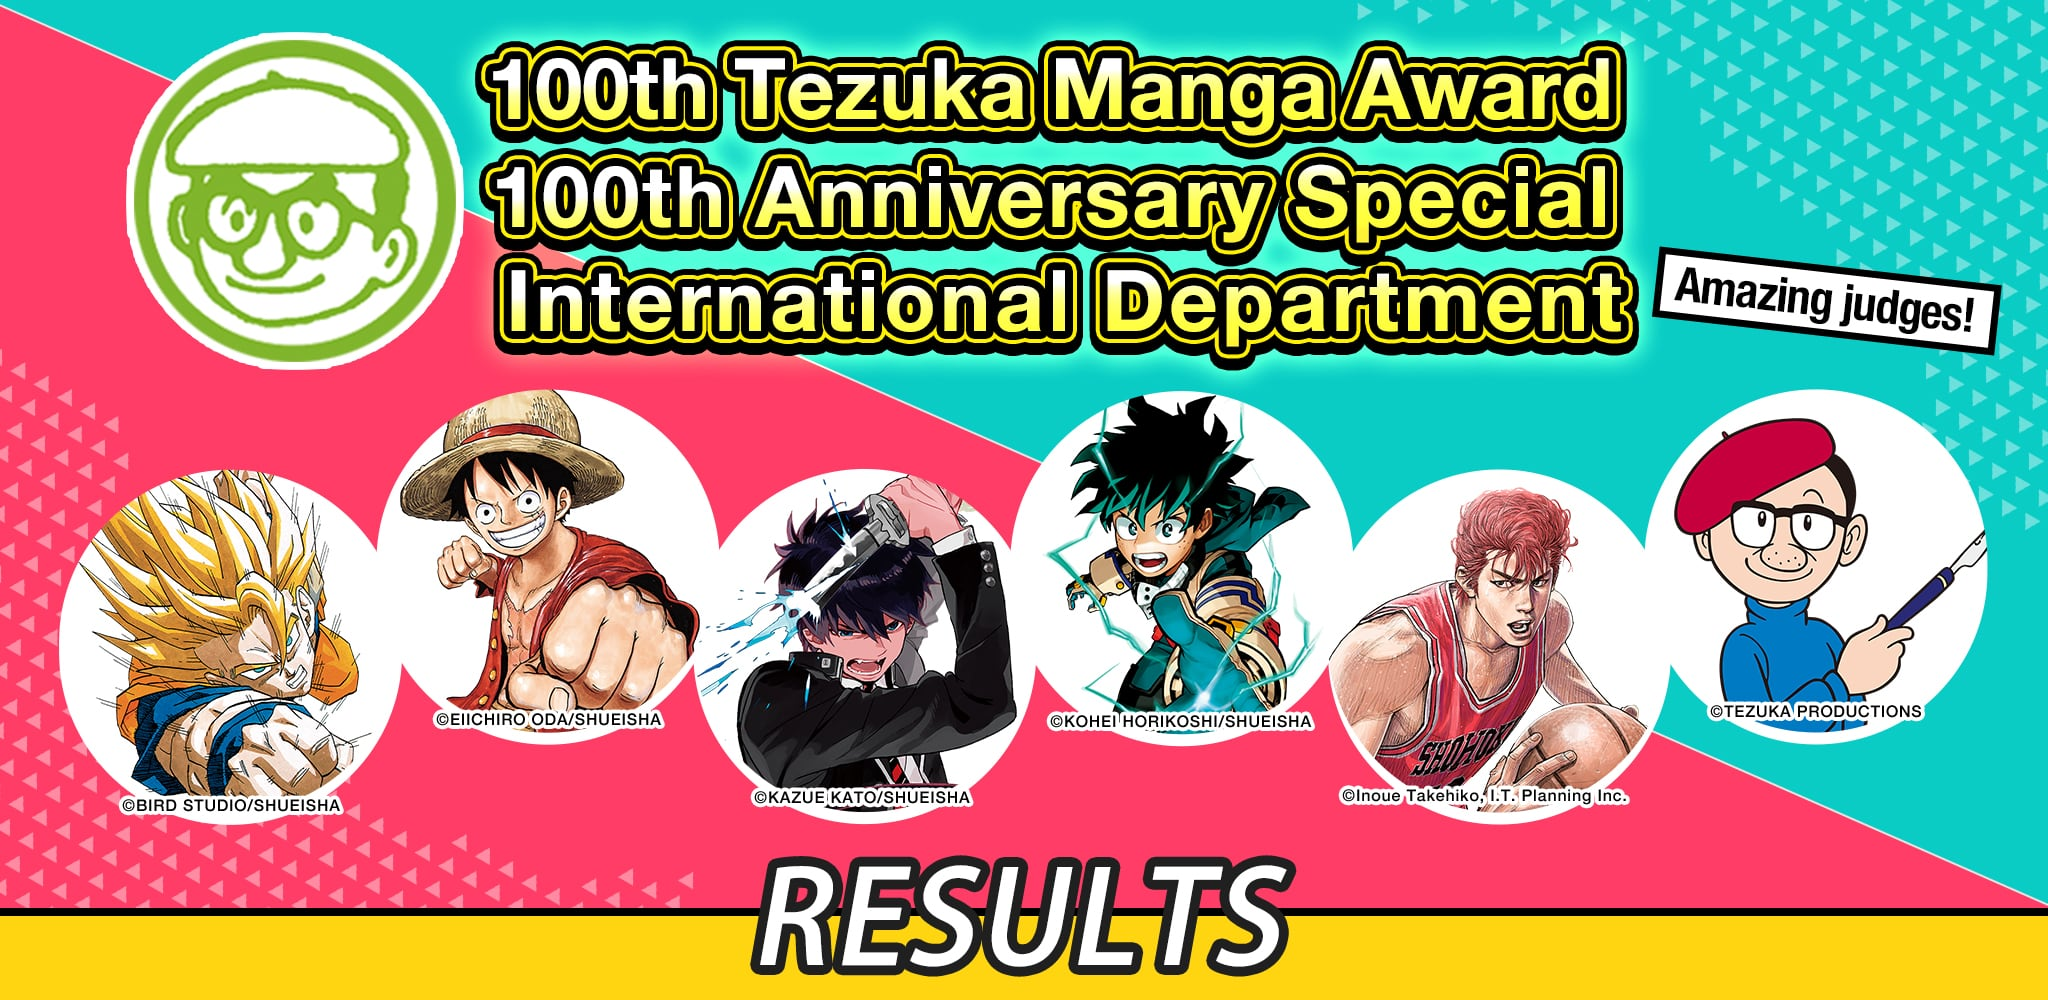 JUMP TEZUKA MANGA CONTEST 100th Anniversary - Oversea Department Special Award   Results | Contest - ART street by MediBang